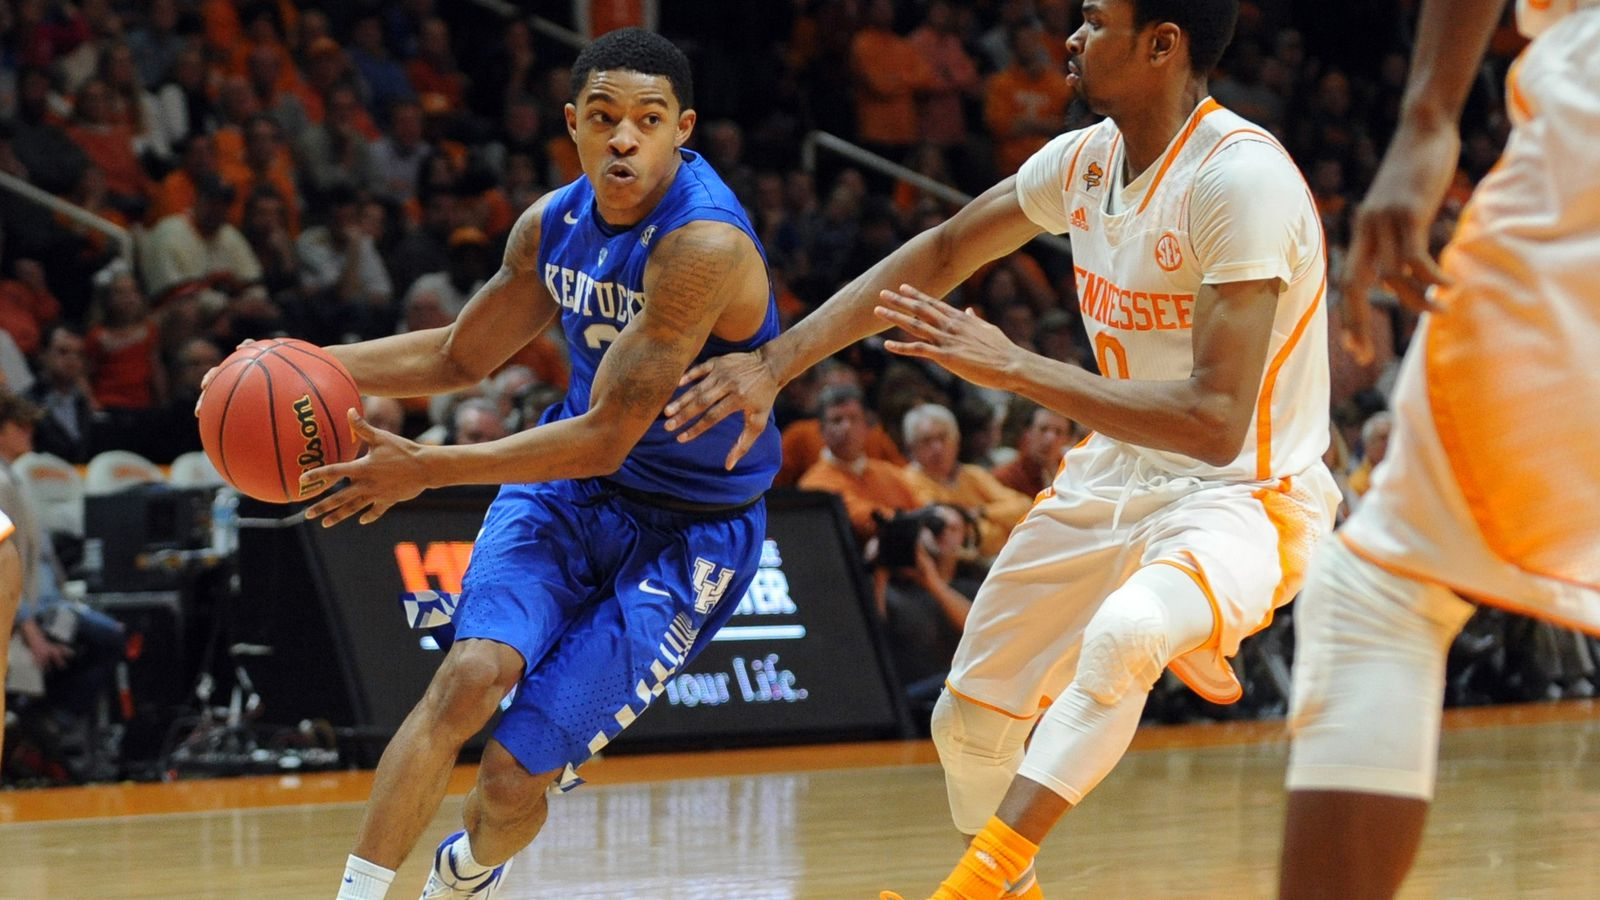 Tennessee Vols Vs. Kentucky Wildcats: Game Thread